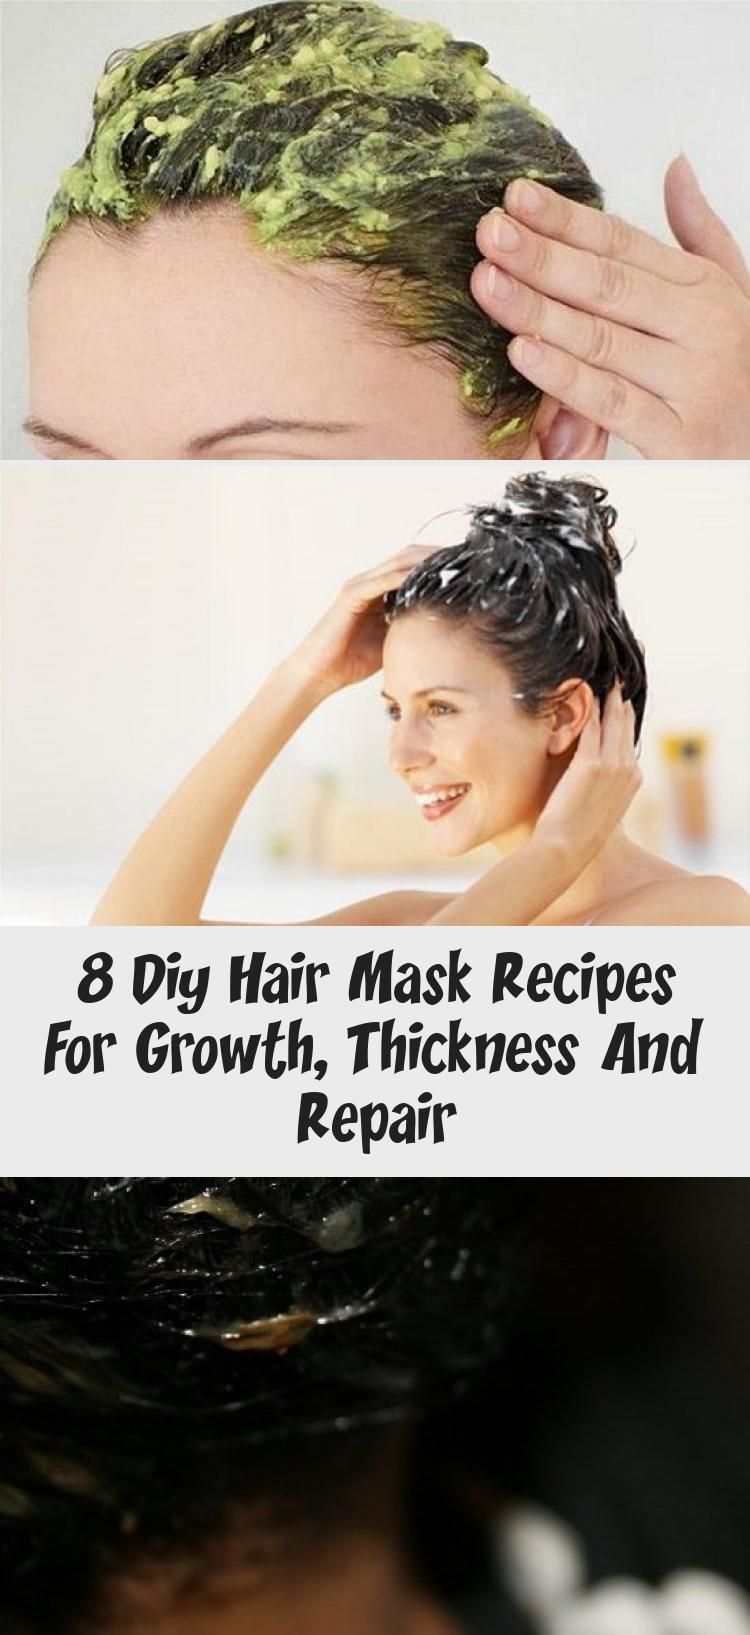 Hair Growth Supplement} and DIY hair mask recipes for growth and thickness are all over the internet, but these recipes are not only safe but also helps to repair your hair effectively! #hairgrowthTransformation #InversionMethodhairgrowth #hairgrowthOnion #Longhairgrowth #Indianhairgrowth